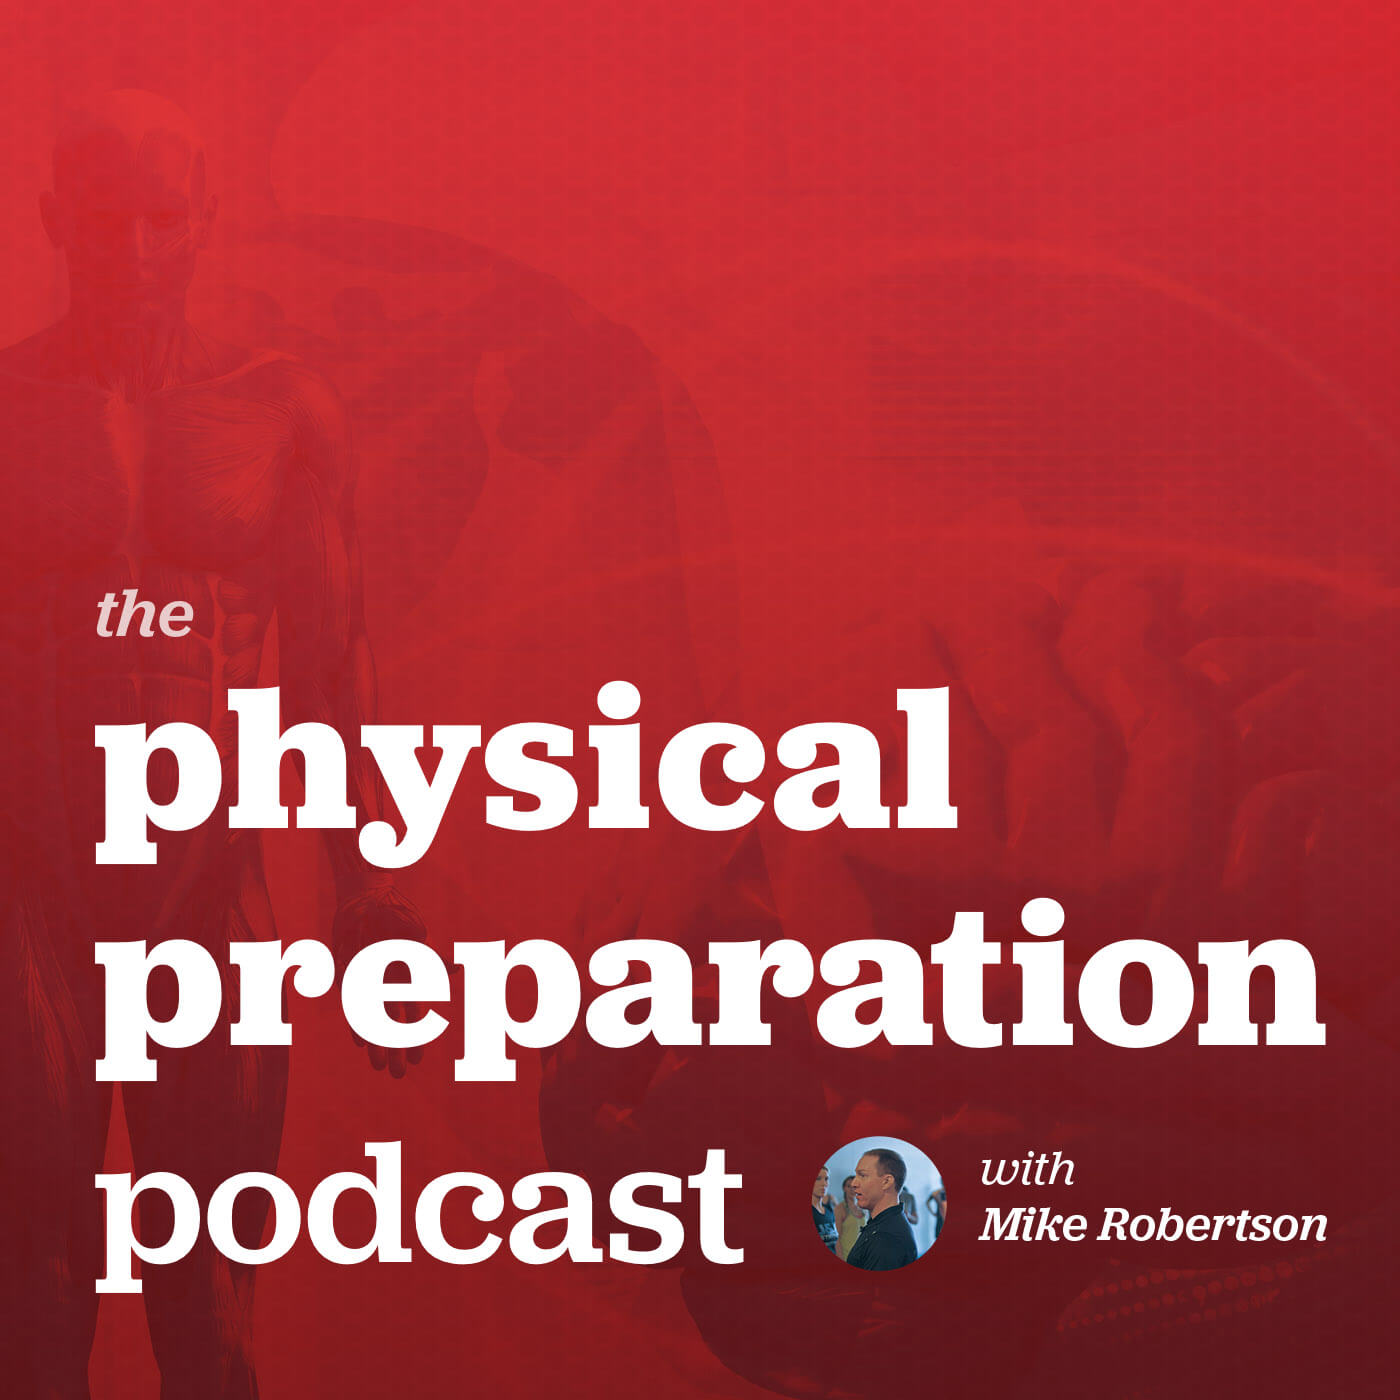 The Physical Preparation Podcast